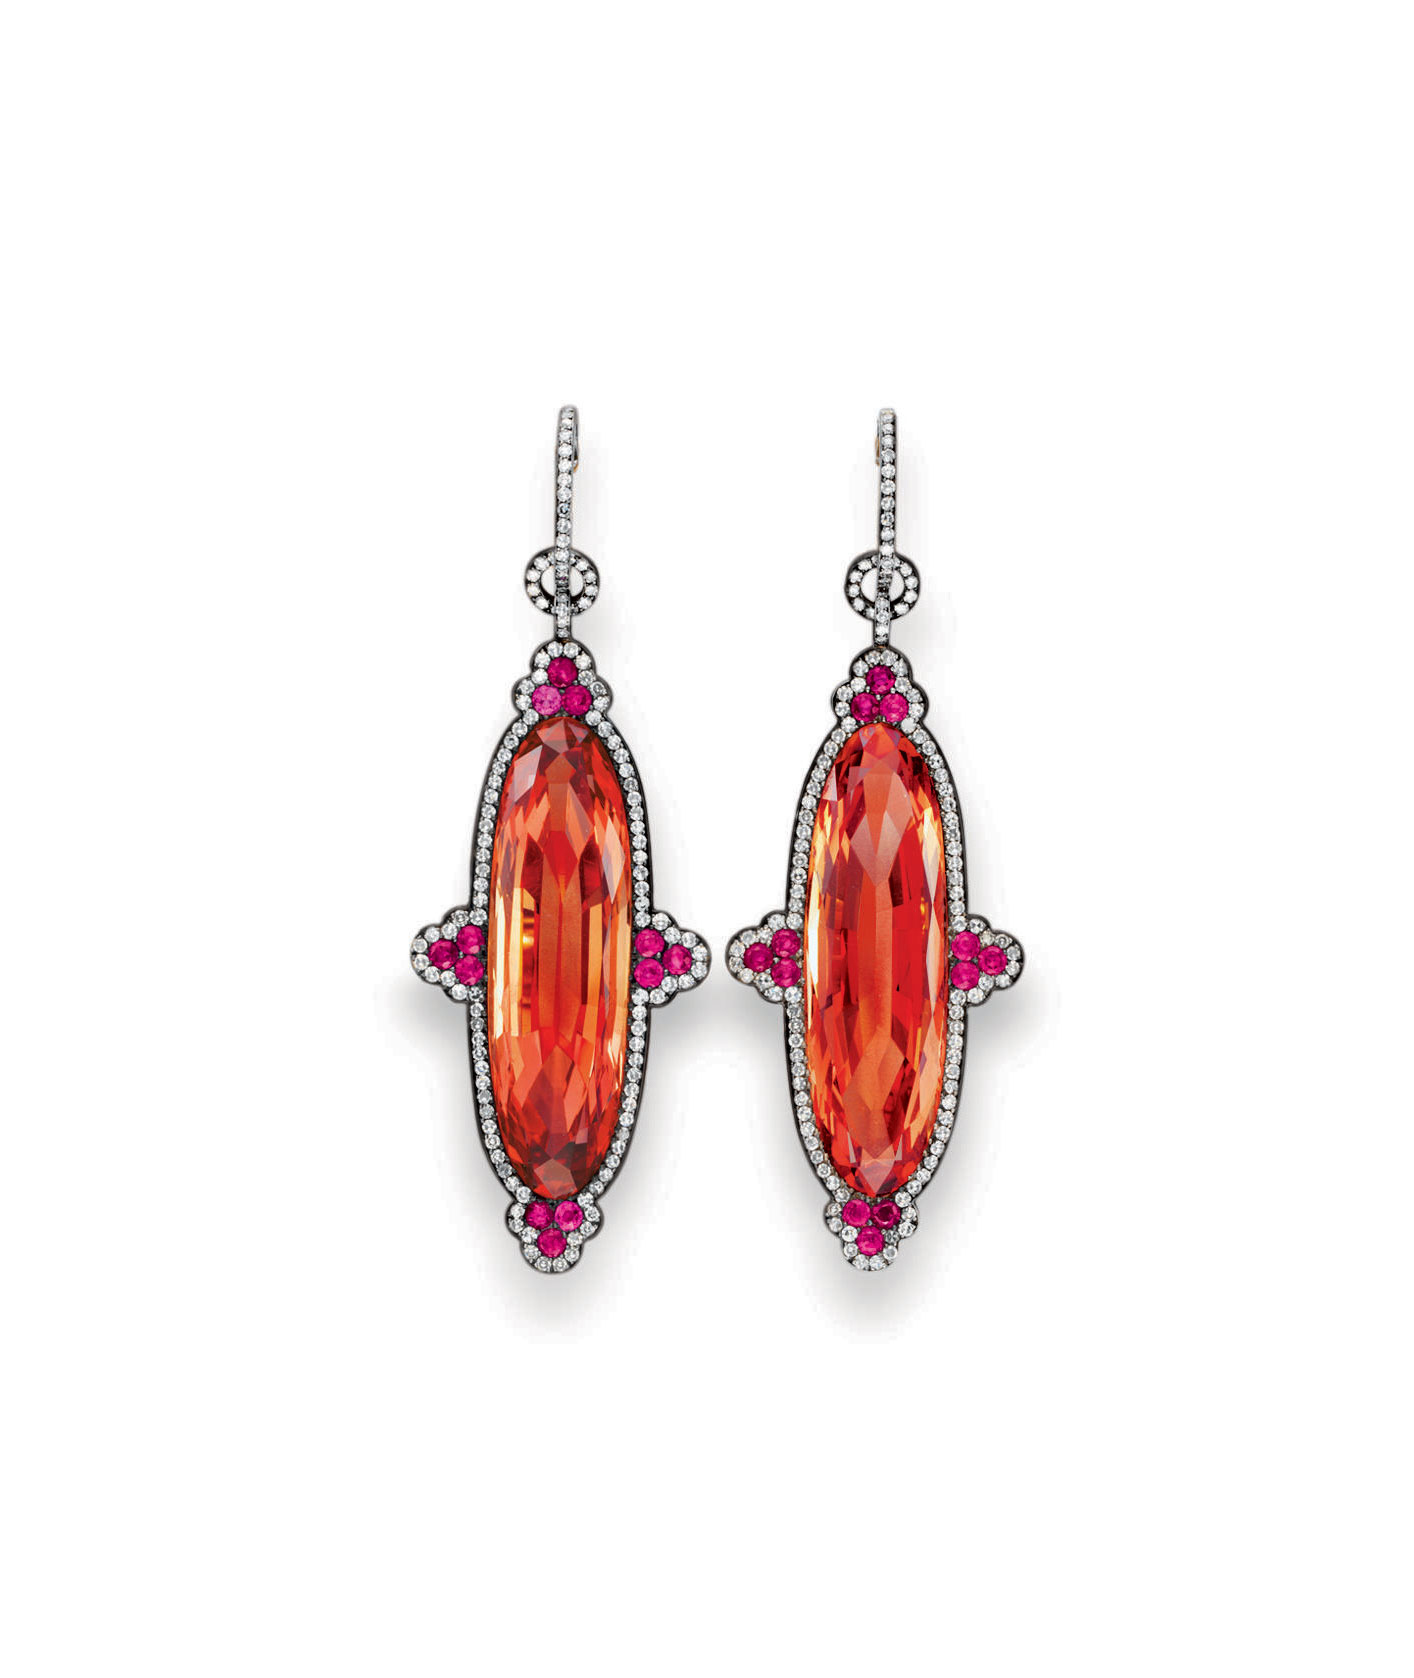 A PAIR OF IMPERIAL TOPAZ, RUBY AND DIAMOND EAR PENDANTS, BY JAR